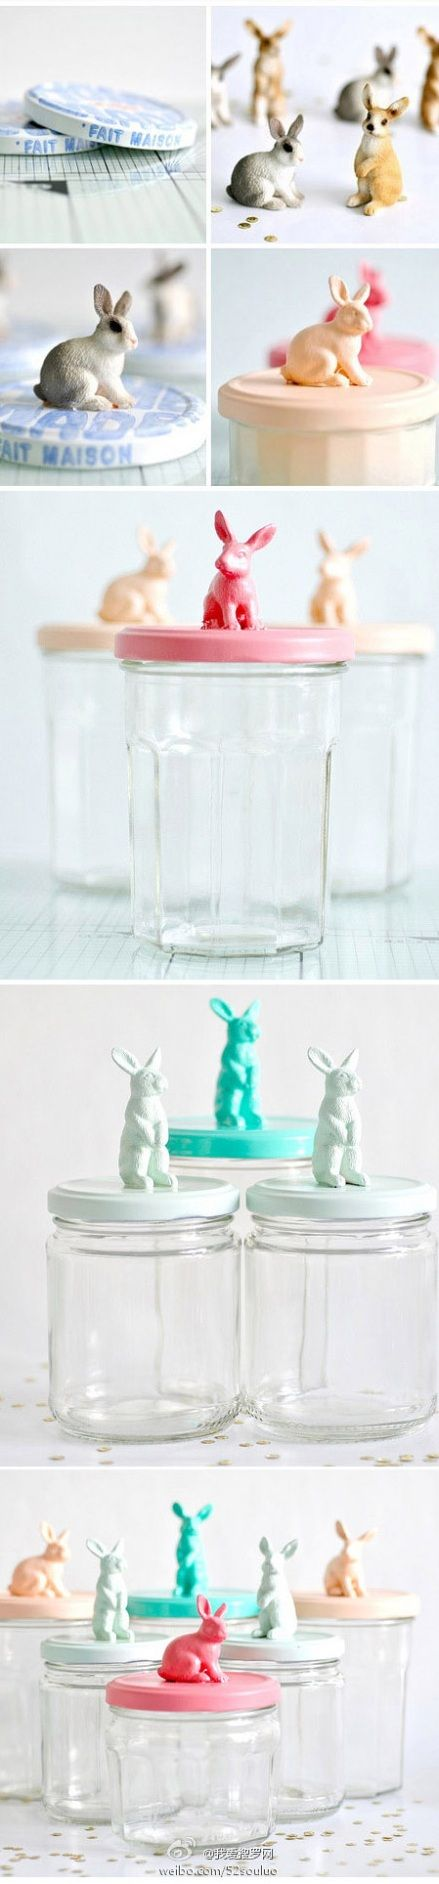 Diy | animaux~bocal